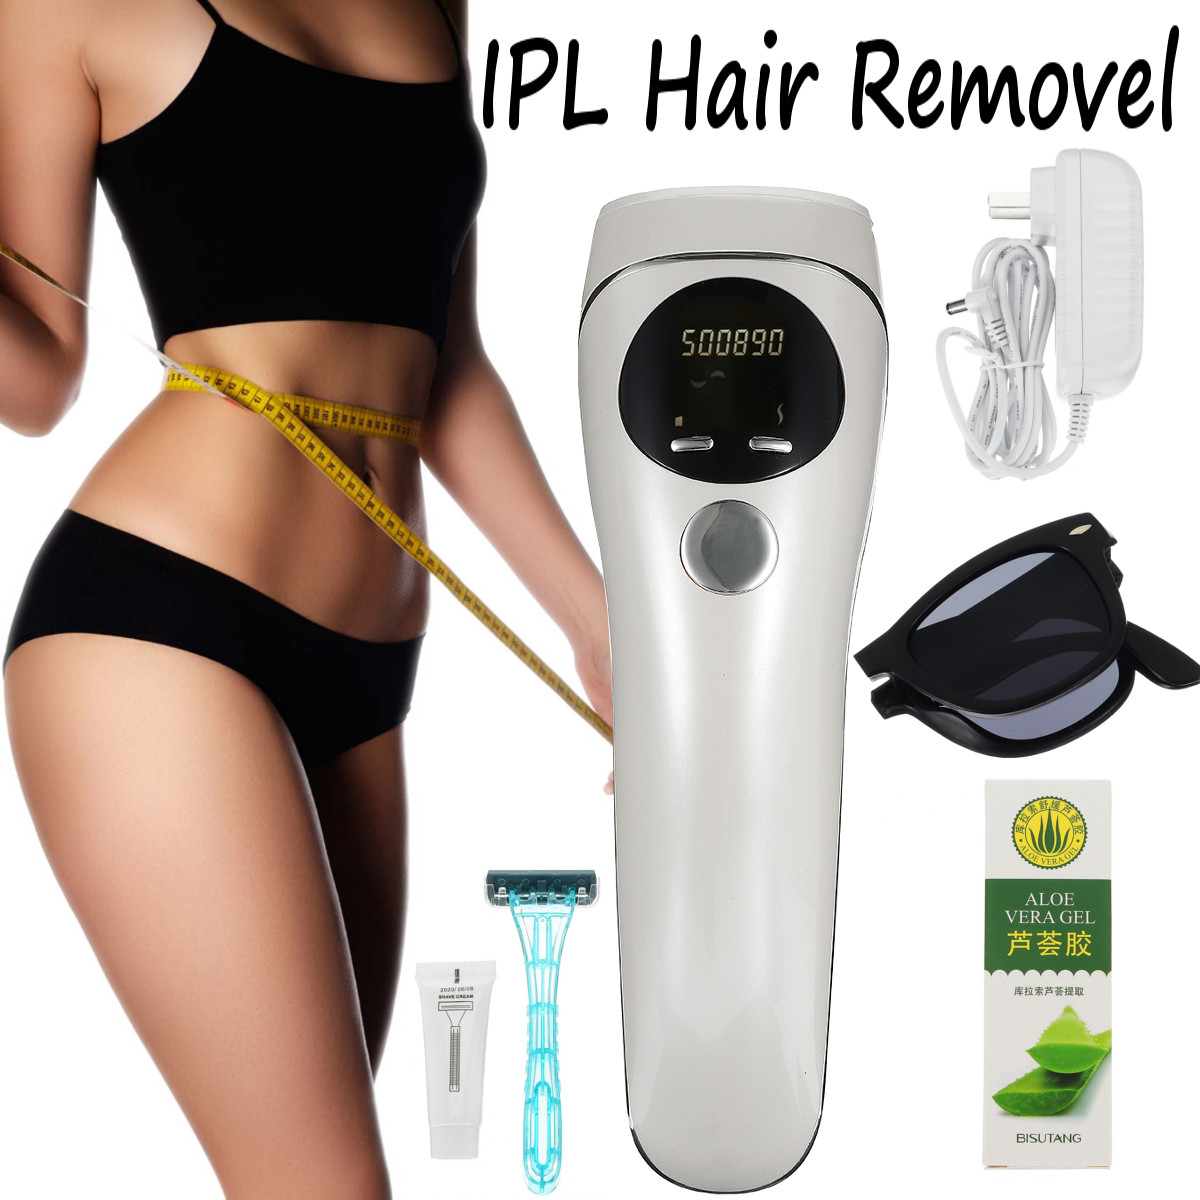 500000 Flashes LCD Display Handheld Laser Epilator Depilador Facial Permanent Hair Removal Device Body Hair Remover Machine500000 Flashes LCD Display Handheld Laser Epilator Depilador Facial Permanent Hair Removal Device Body Hair Remover Machine